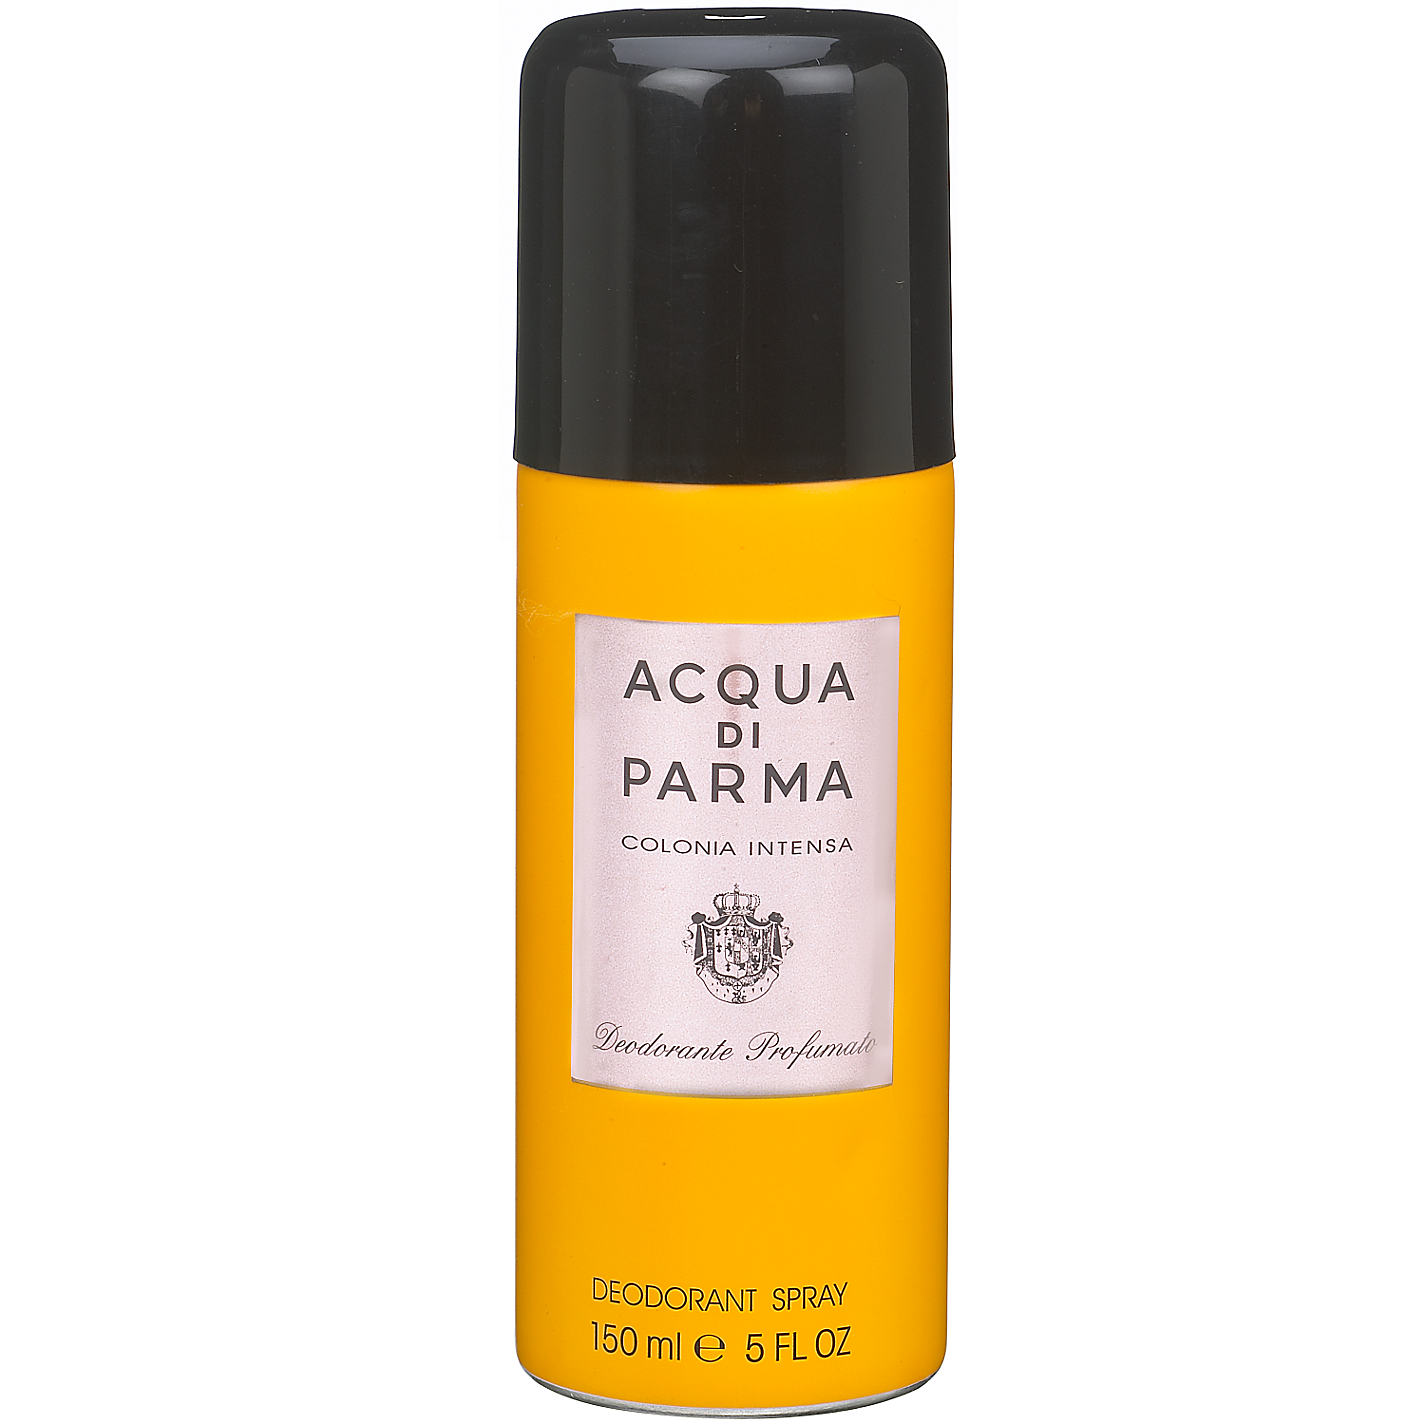 ACQUA DI PARMA COLONIA INTENSA DEO VAPO 150 ML